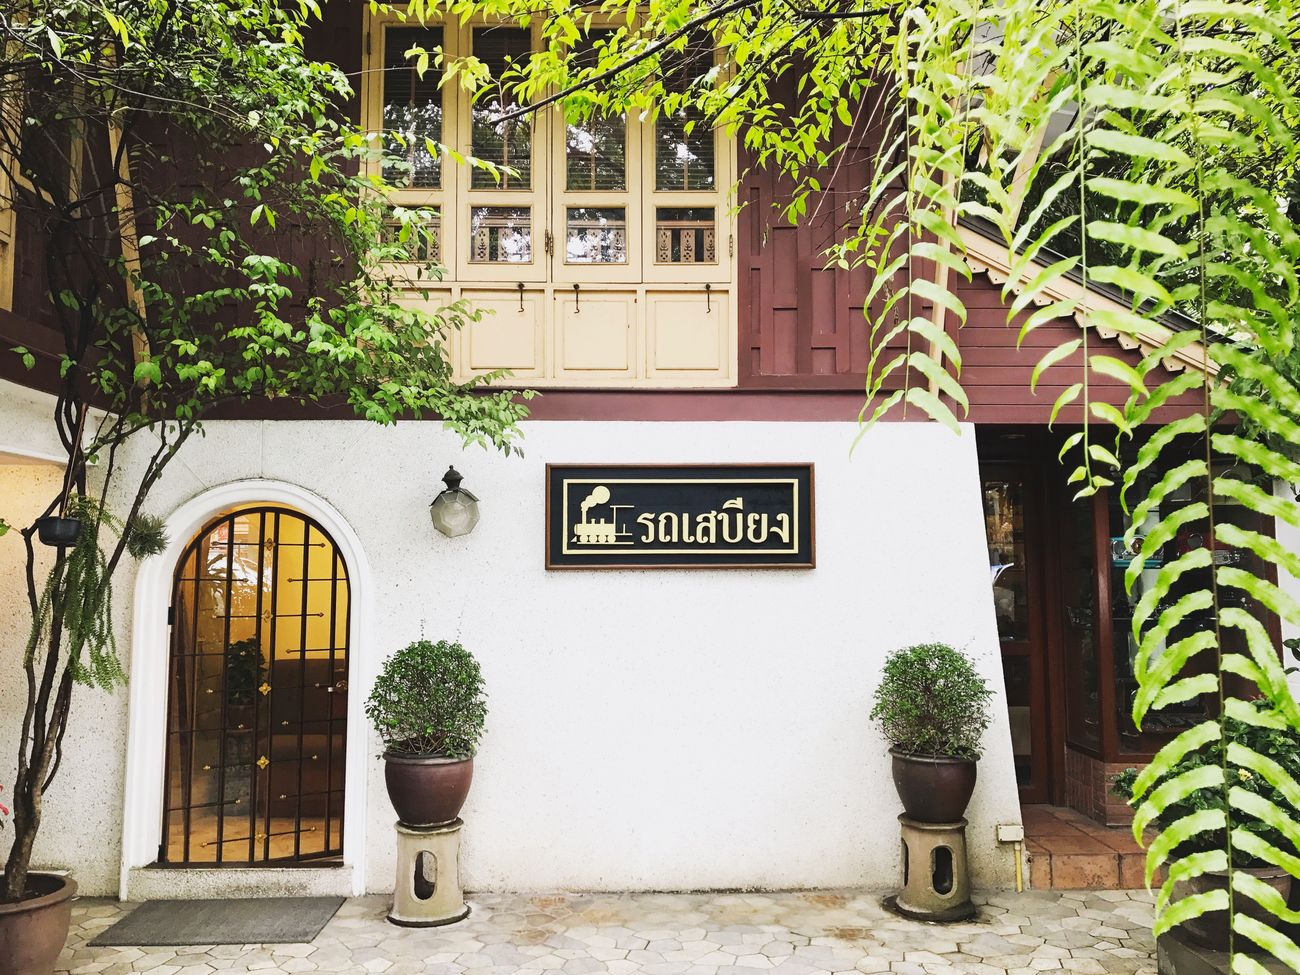 Plant Tree Building Exterior Architecture Growth Built Structure Outdoors Green Color No People Entrance Day Nature Restaurant Thailand